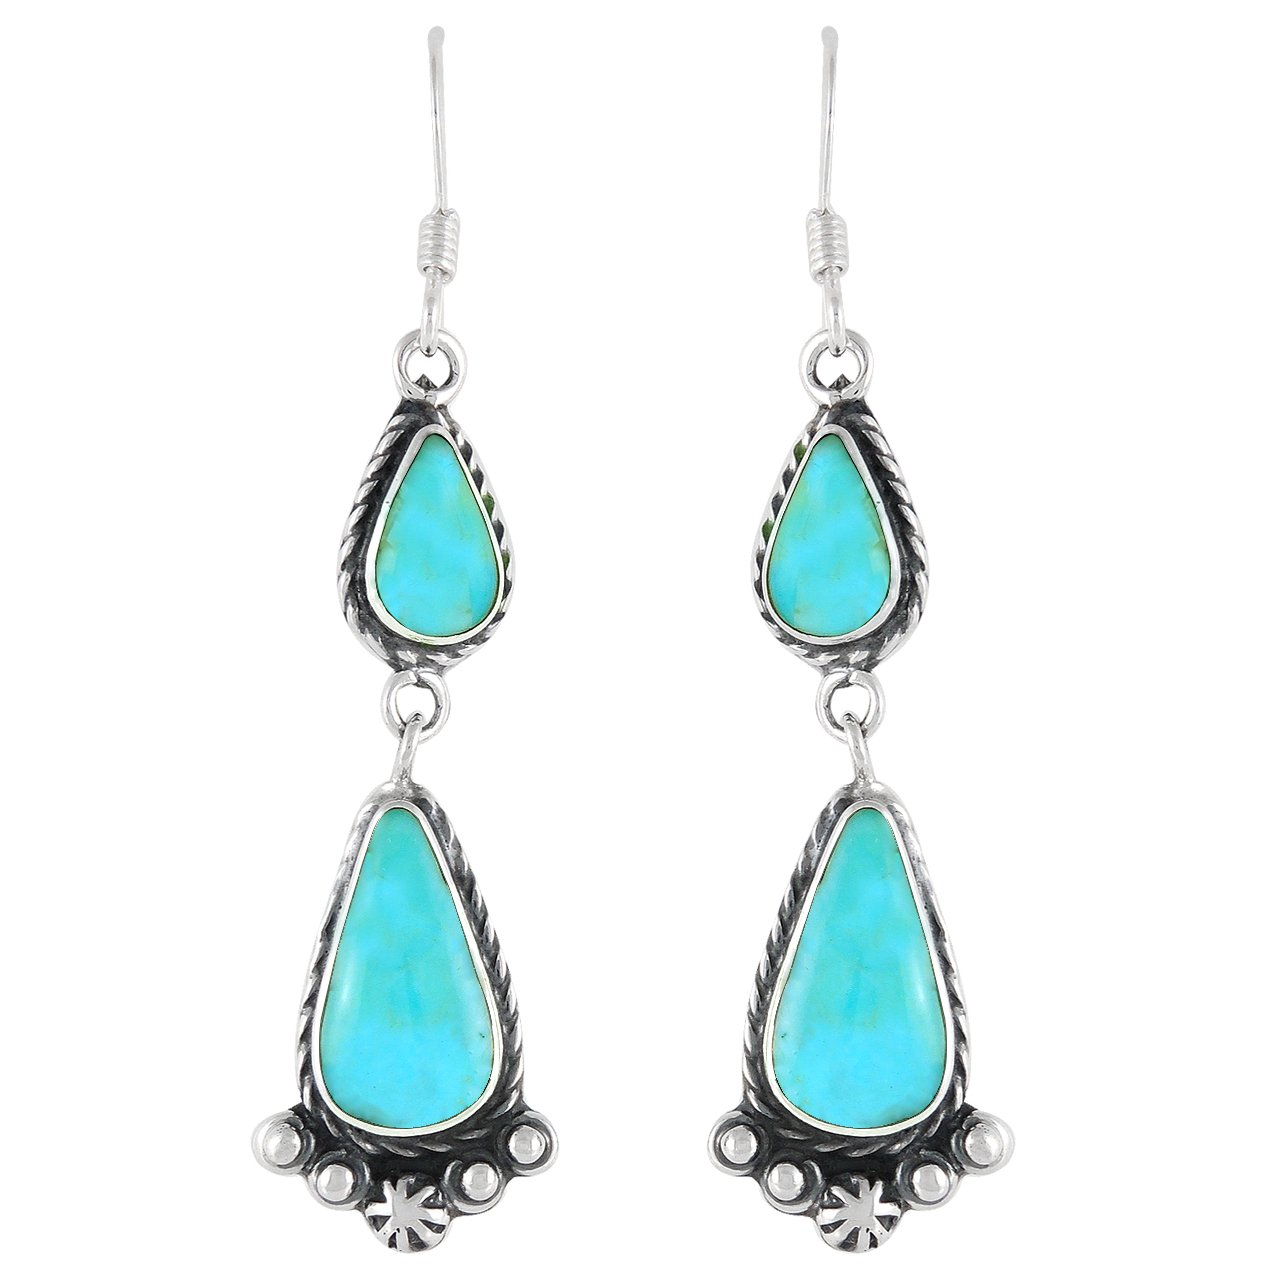 Turquoise Earrings 925 Sterling Silver & Genuine Turquoise (Select style) (Western Dangles)